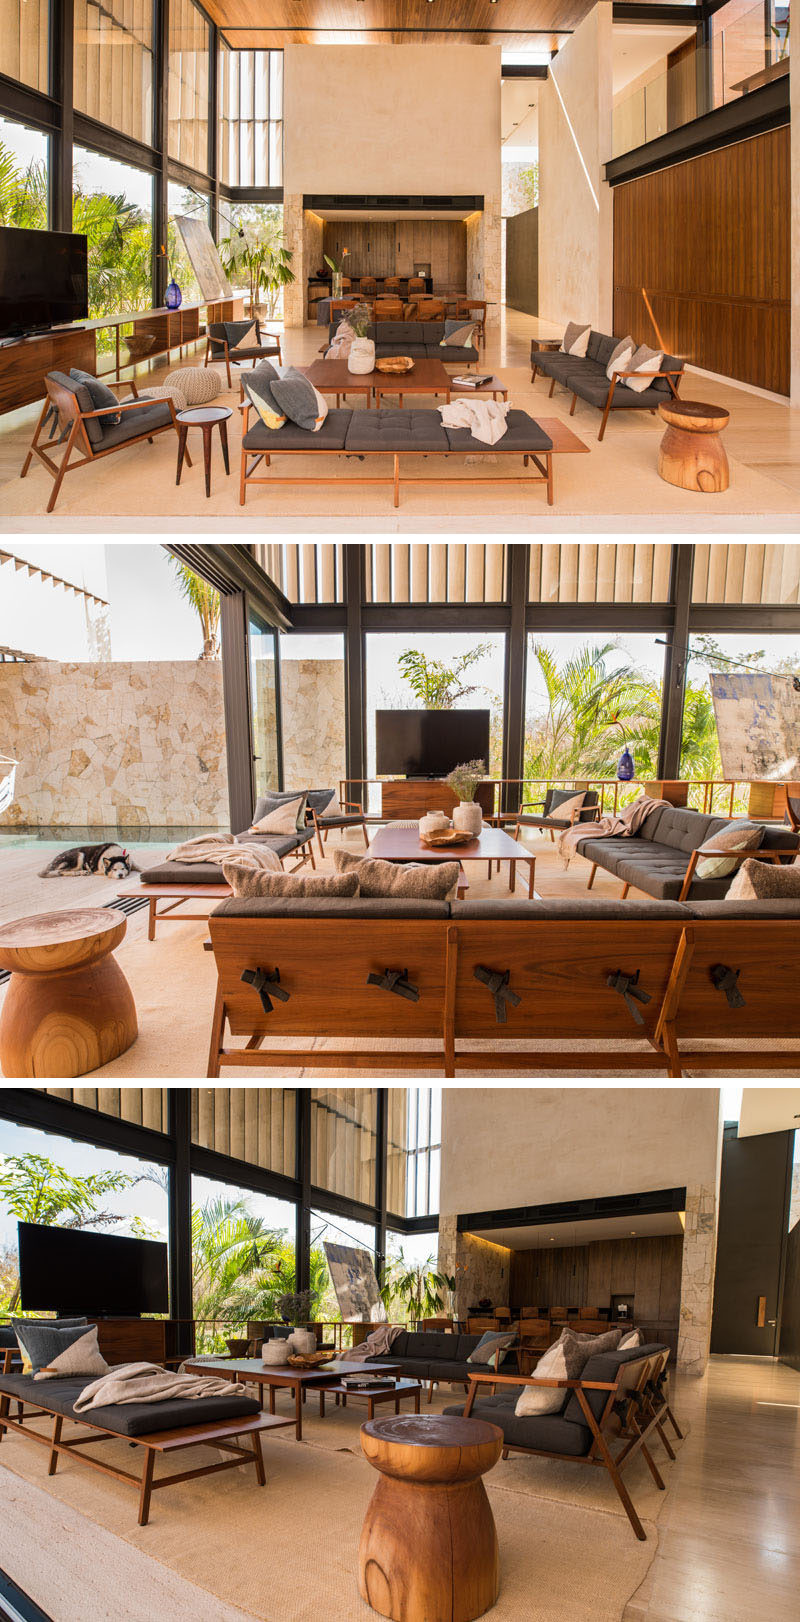 This modern home has an outdoor entertaining area that flows through to the interior of the house and the living room. A simple color palette of grey, wood and stone has been used to create a relaxed environment that ties back to nature.